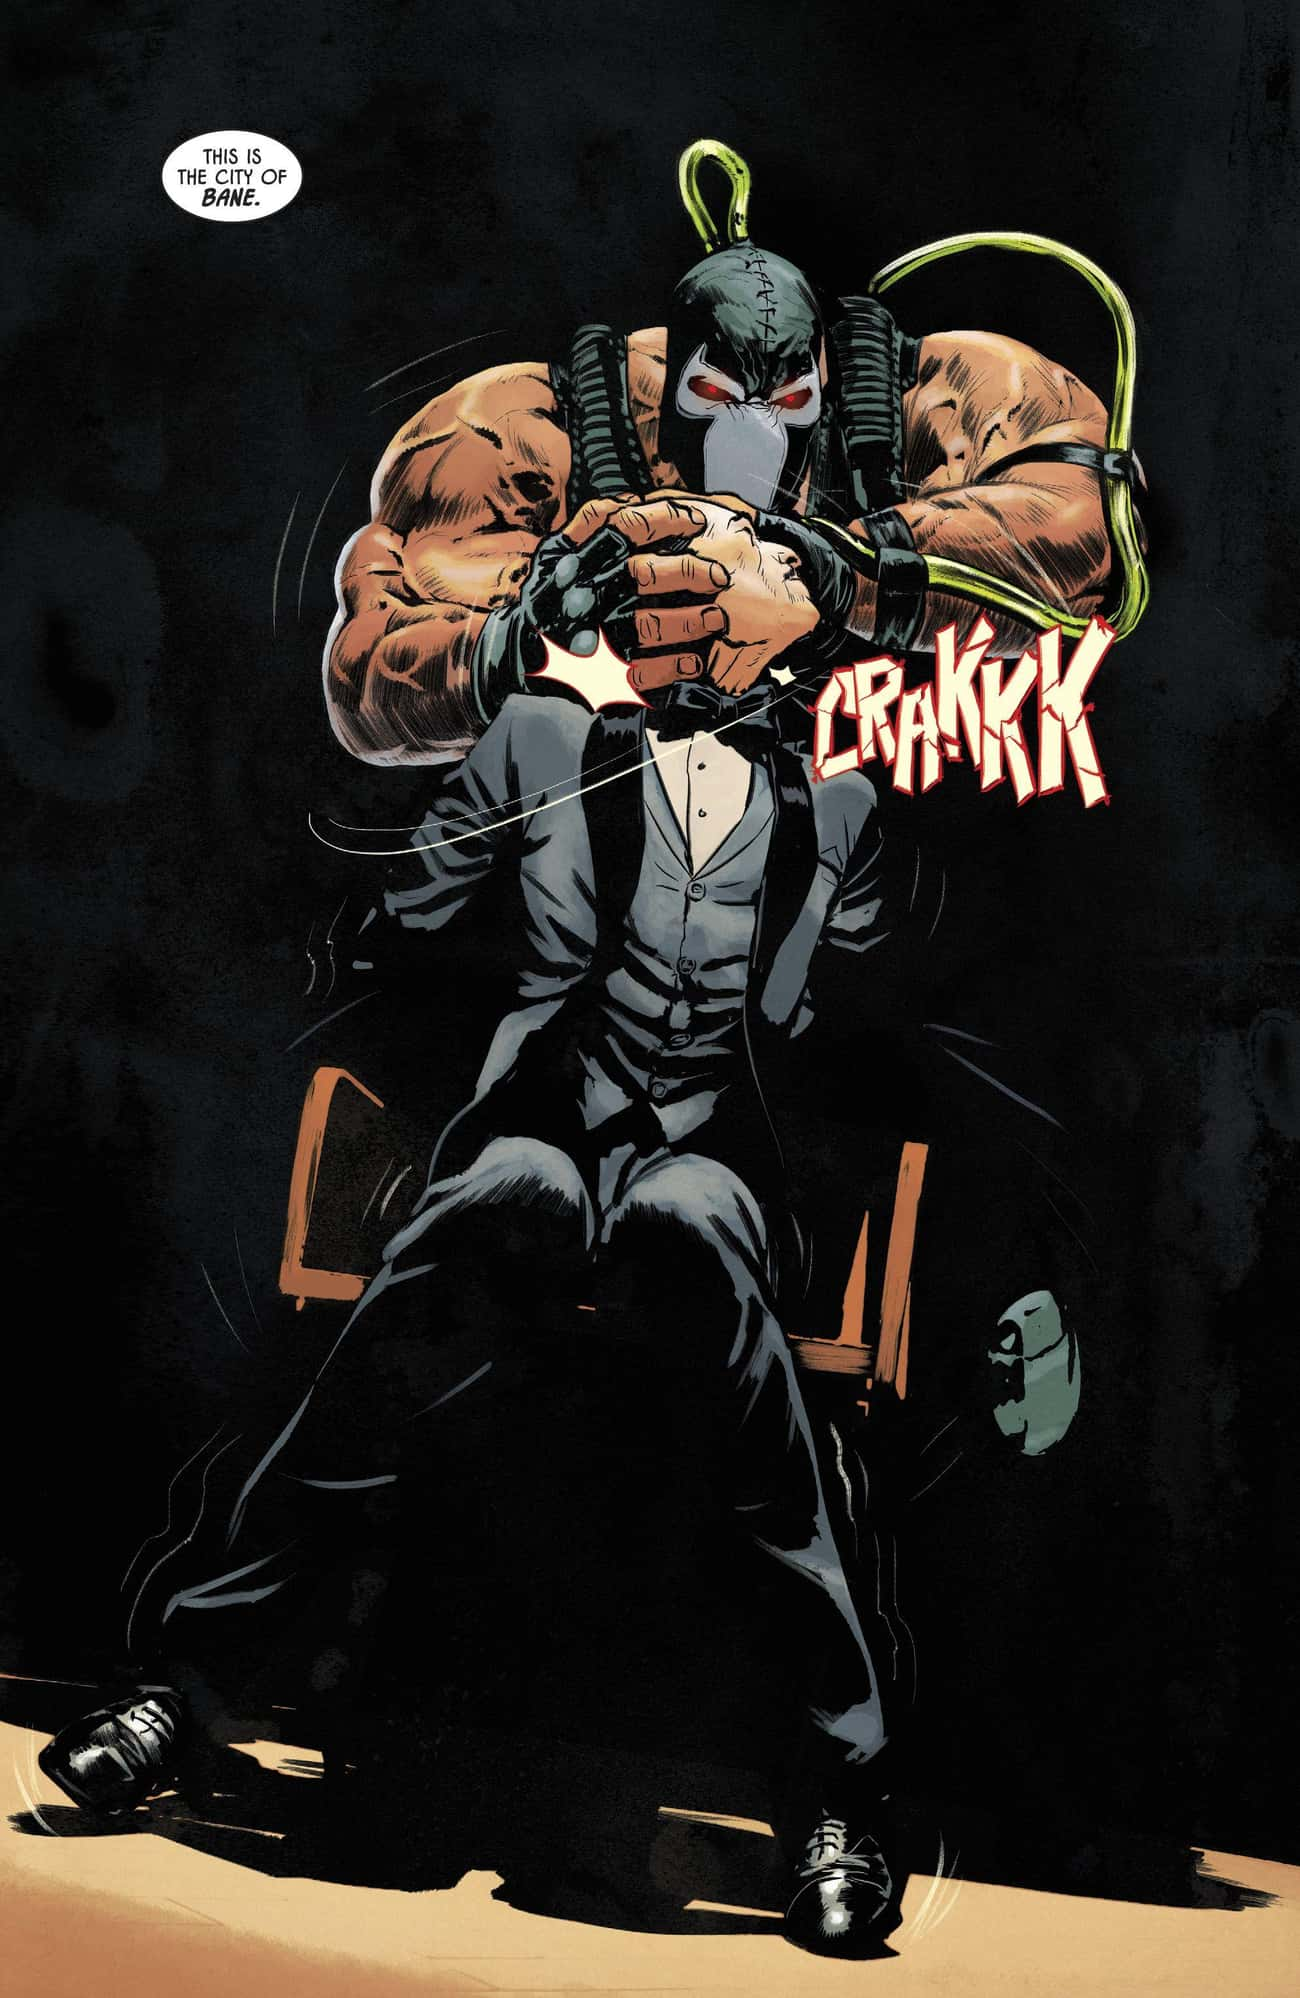 Joker Has Maimed Alfred Pennyw is listed (or ranked) 2 on the list Forget The Joker - Why Bane Is Batman's True Arch Nemesis